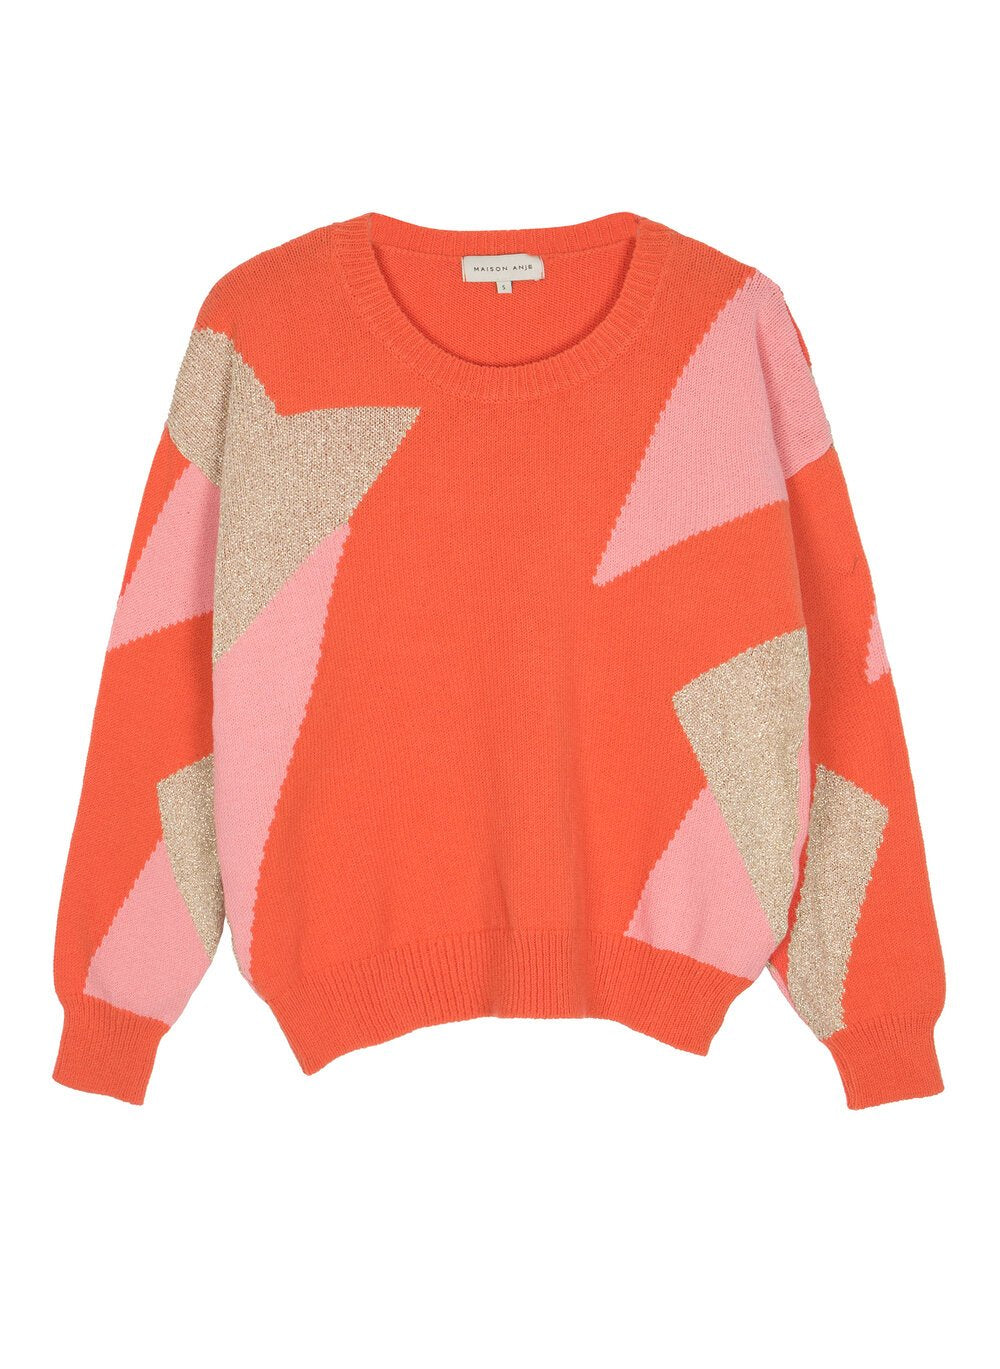 Sunset LaSalva Knit